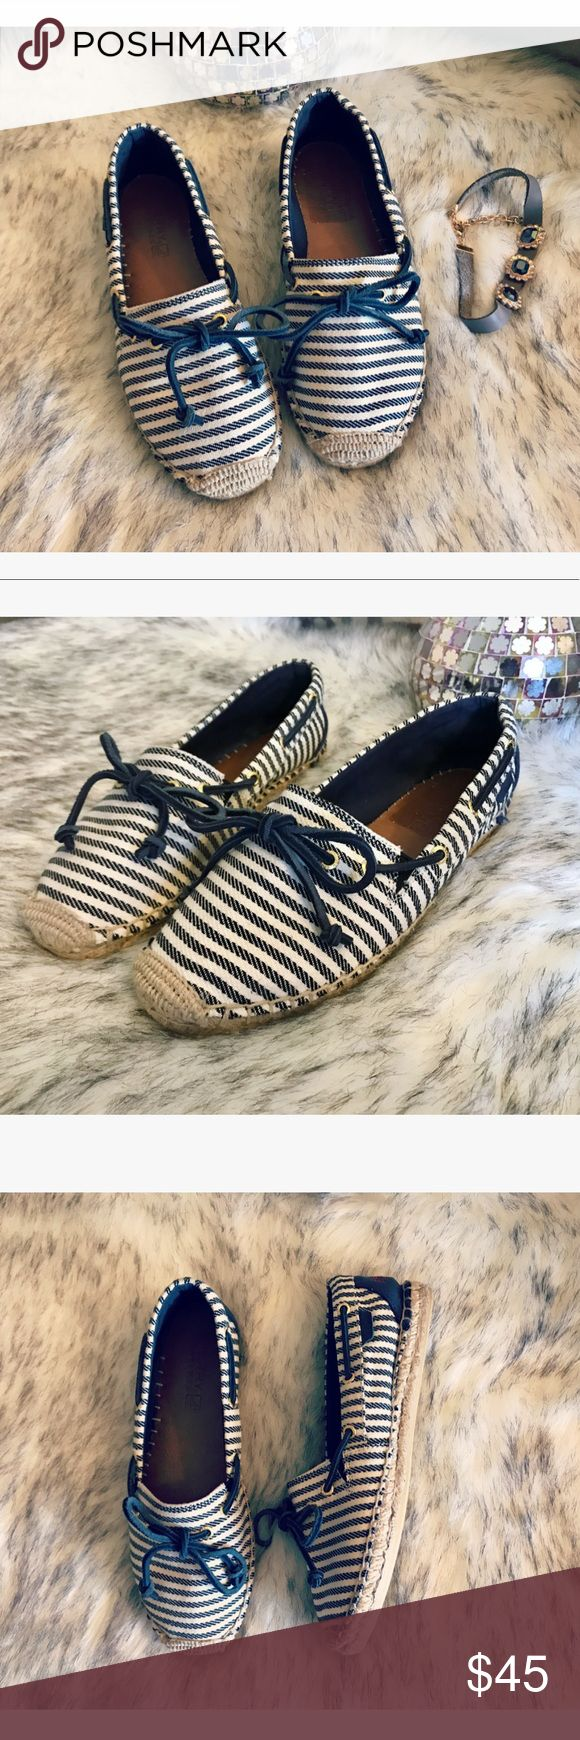 💖 Sperry flats 💖 💖 Very cute Sperry flats in size 7.5 never worn 💖 Sperry Shoes Flats & Loafers